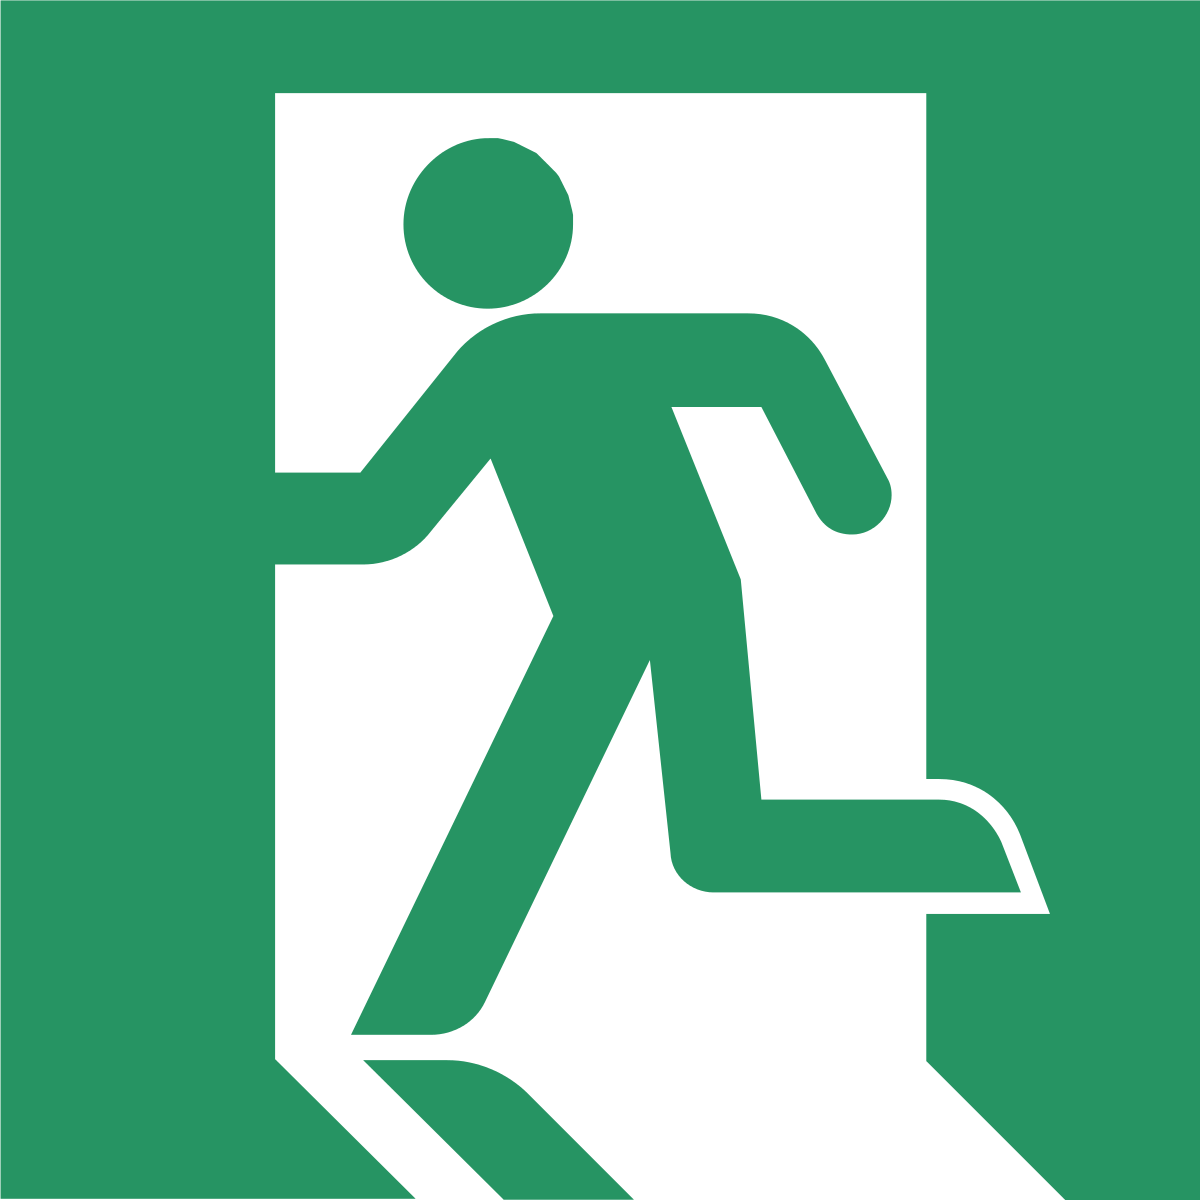 image freeuse Walking out the door clipart. Exit sign wikipedia .